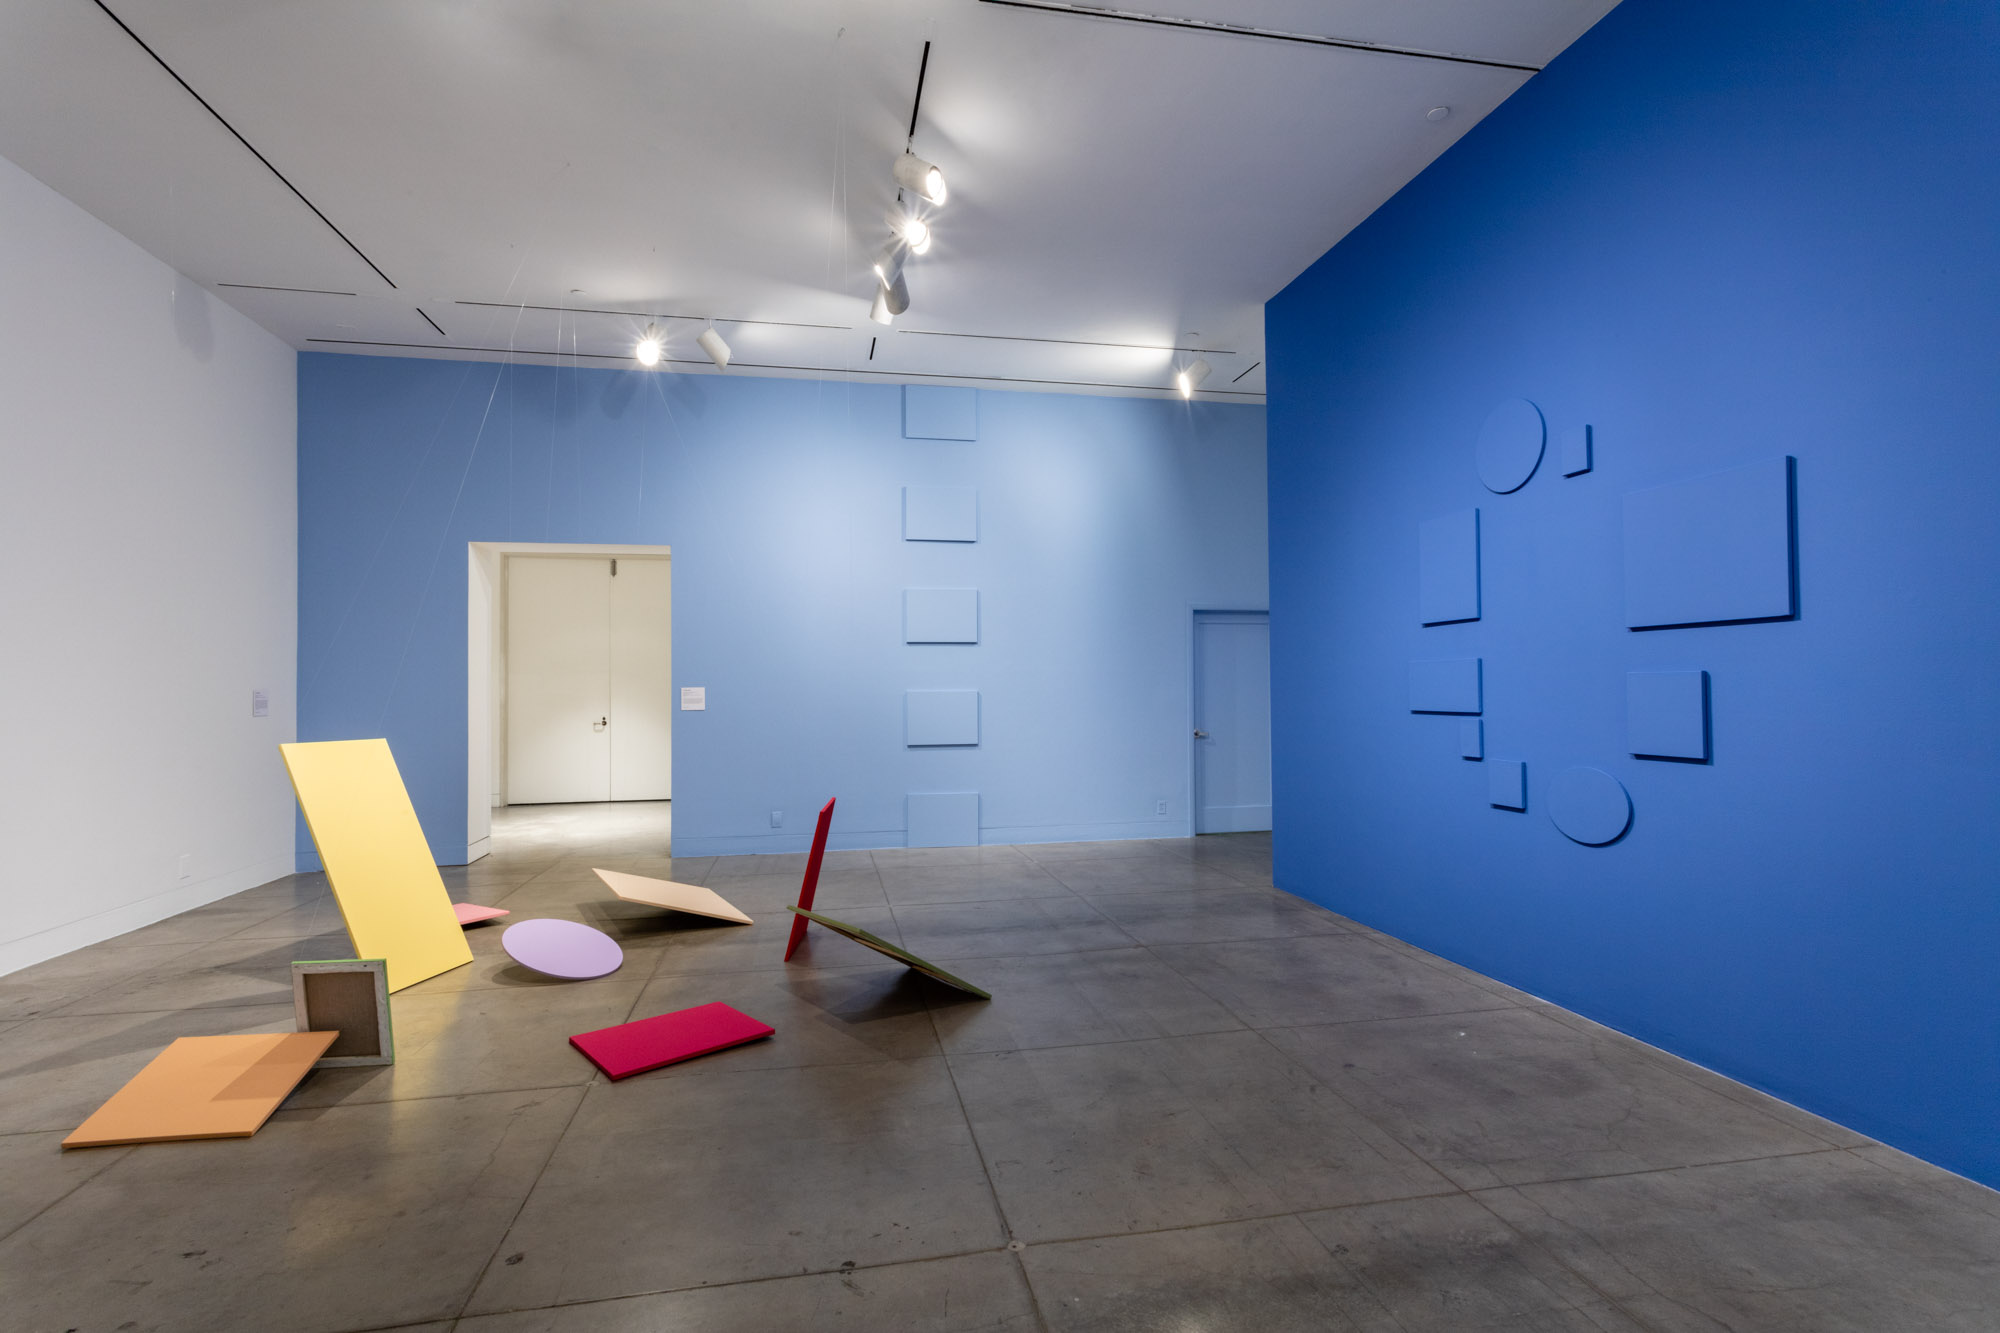 Interior of a gallery with blue walls covered in Claude Rutault paintings